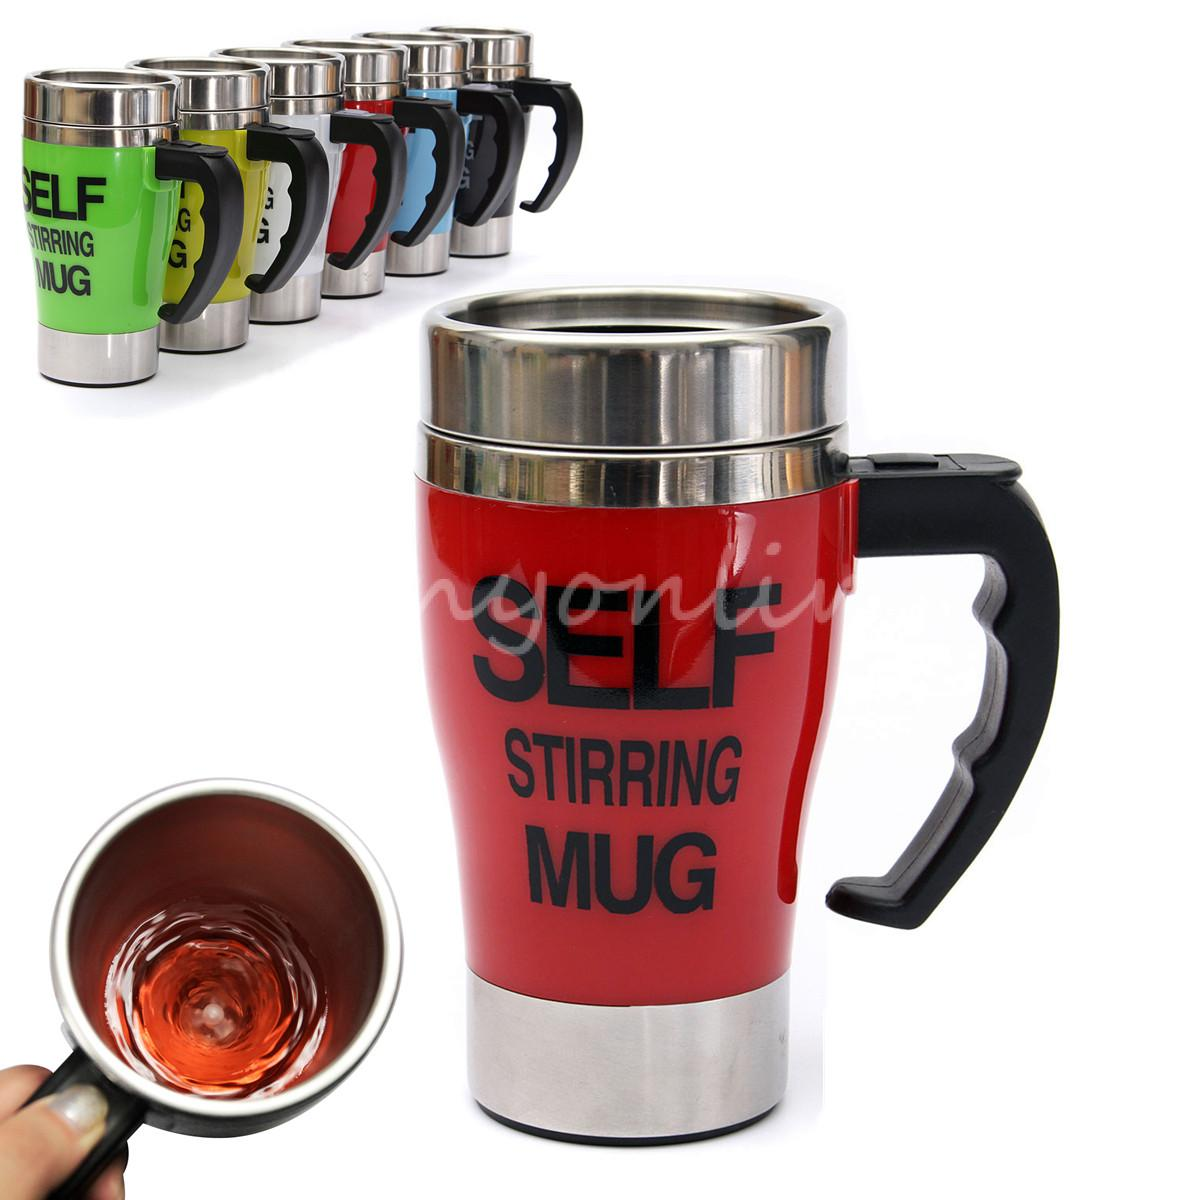 Hot Sale 6 colors Stainless Steel Lazy Self Stirring Mug Auto Mixing Tea Milk Coffee Cup